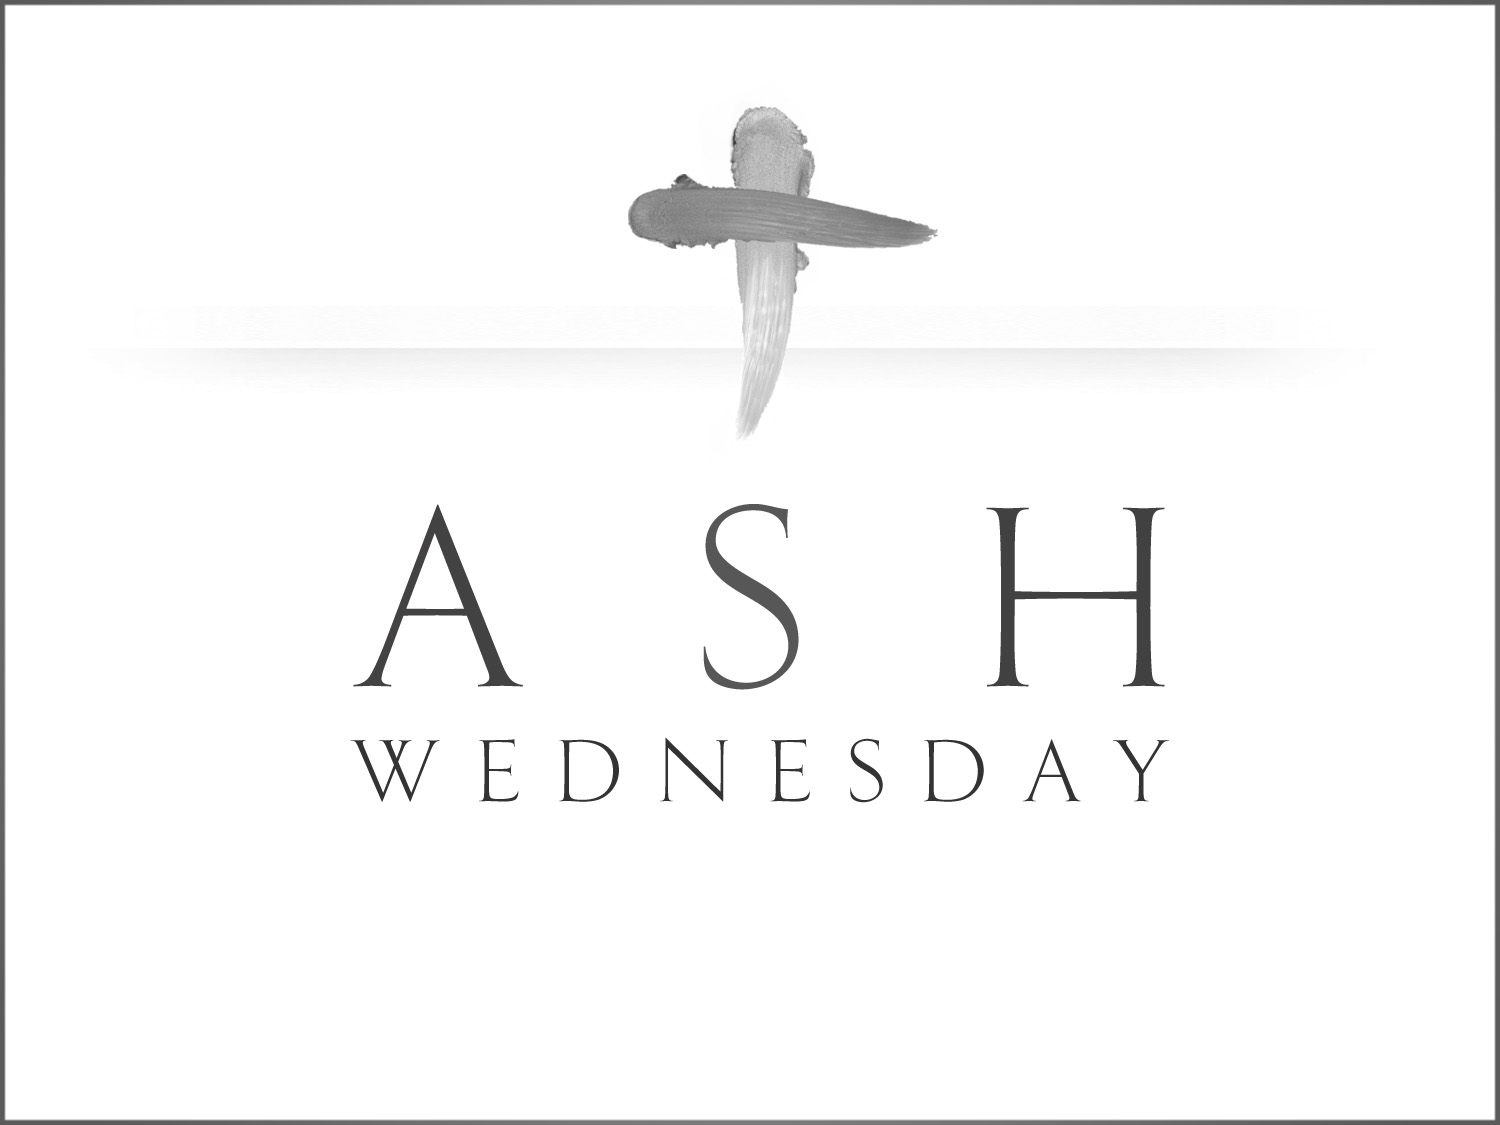 ash wednesday 3 - photo #5